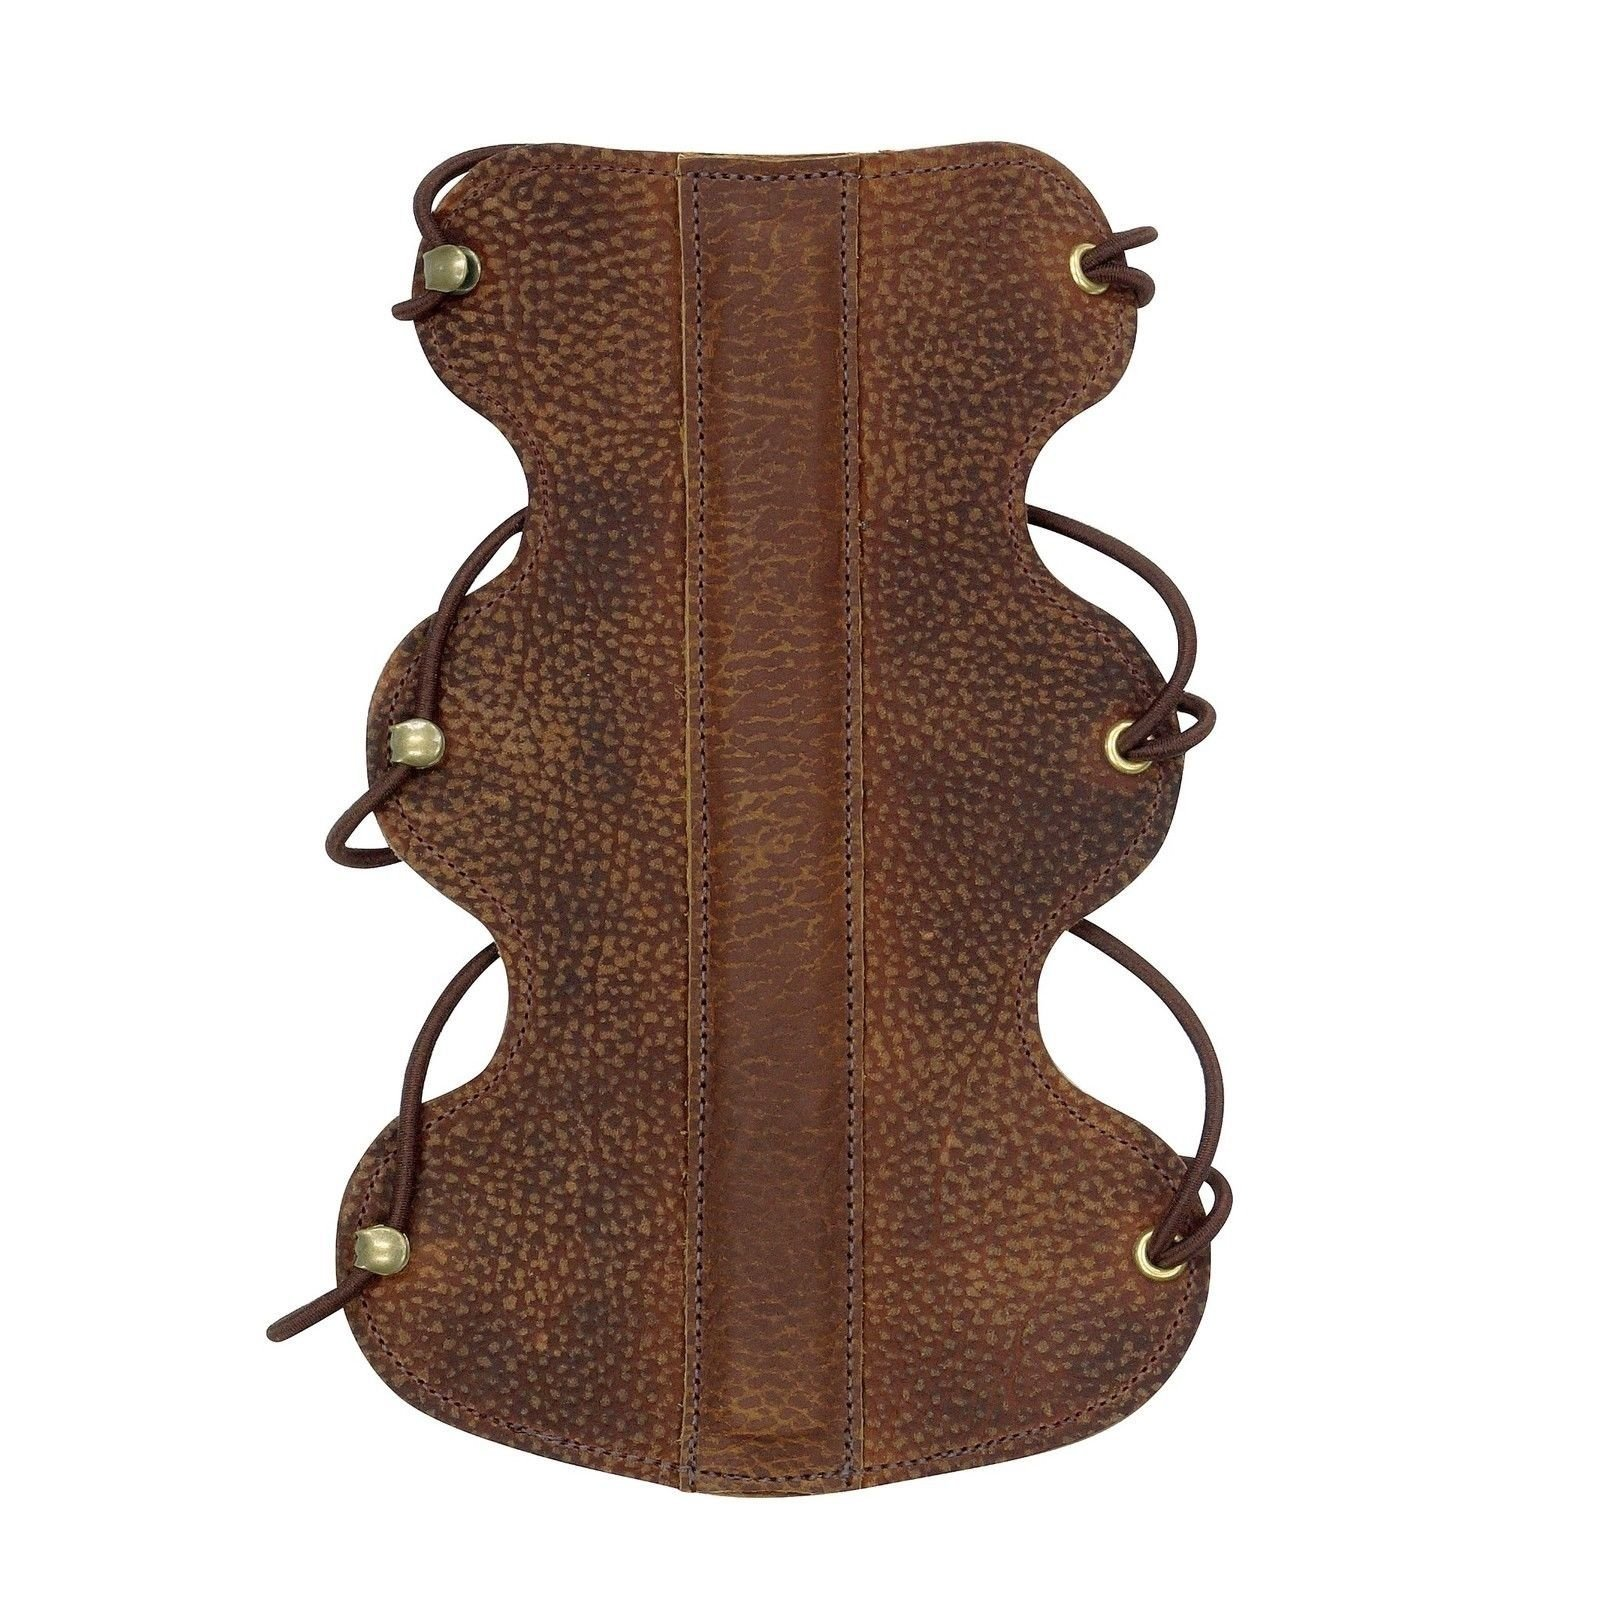 Serious Archery Vintage Stiff Back Armguard Brown Leather